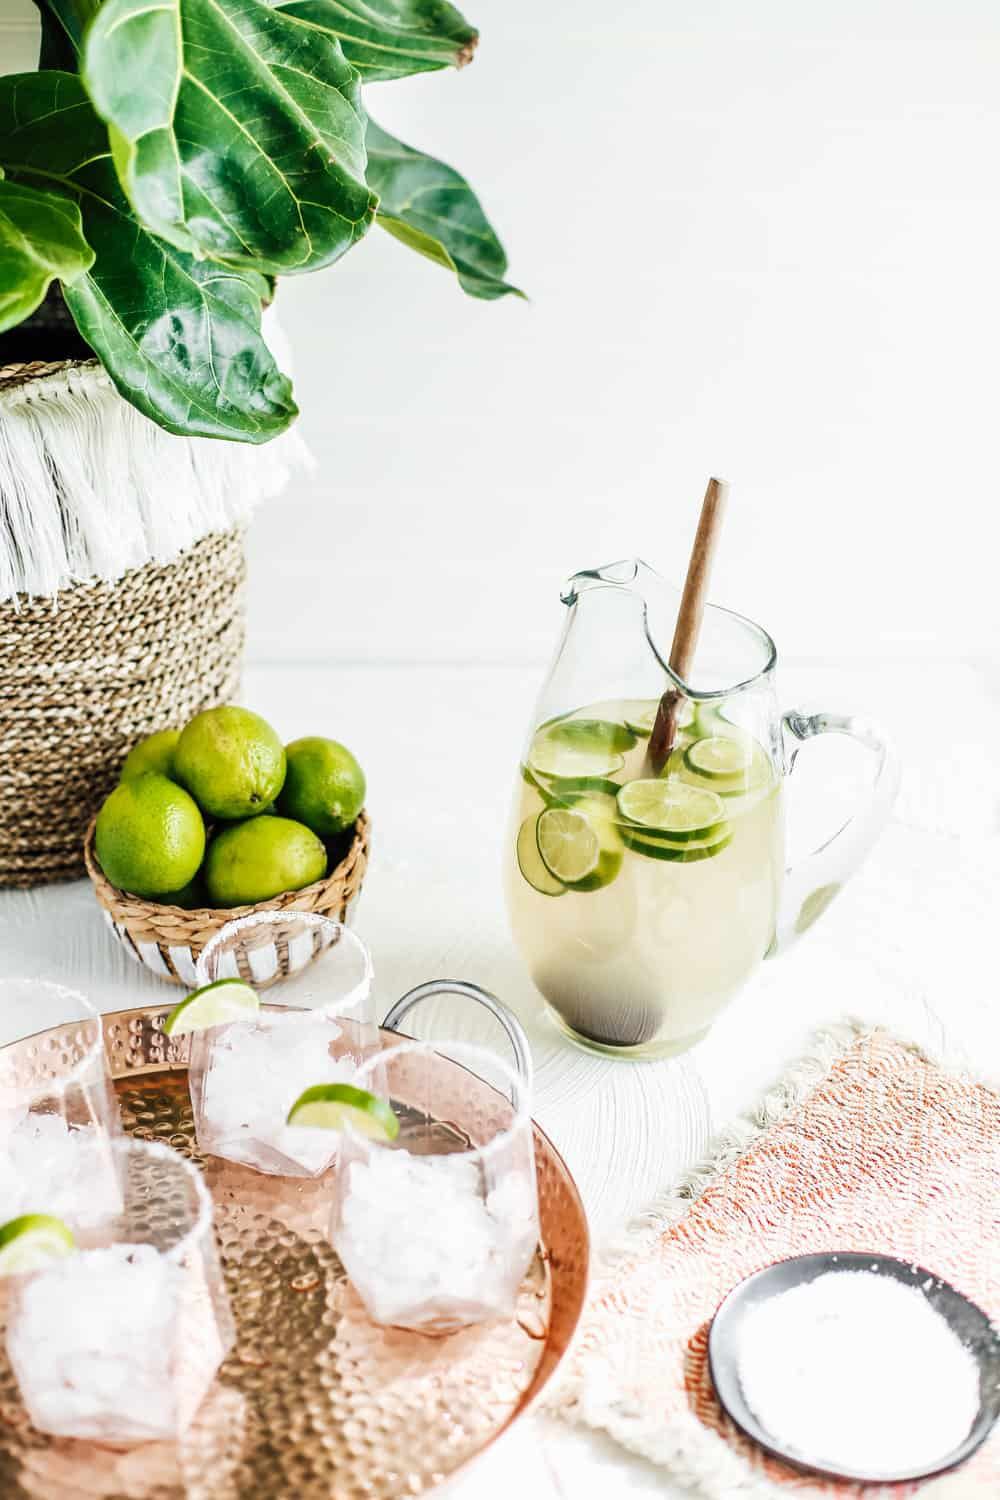 A pitcher of a classic margarita with limes and a wooden spoon.